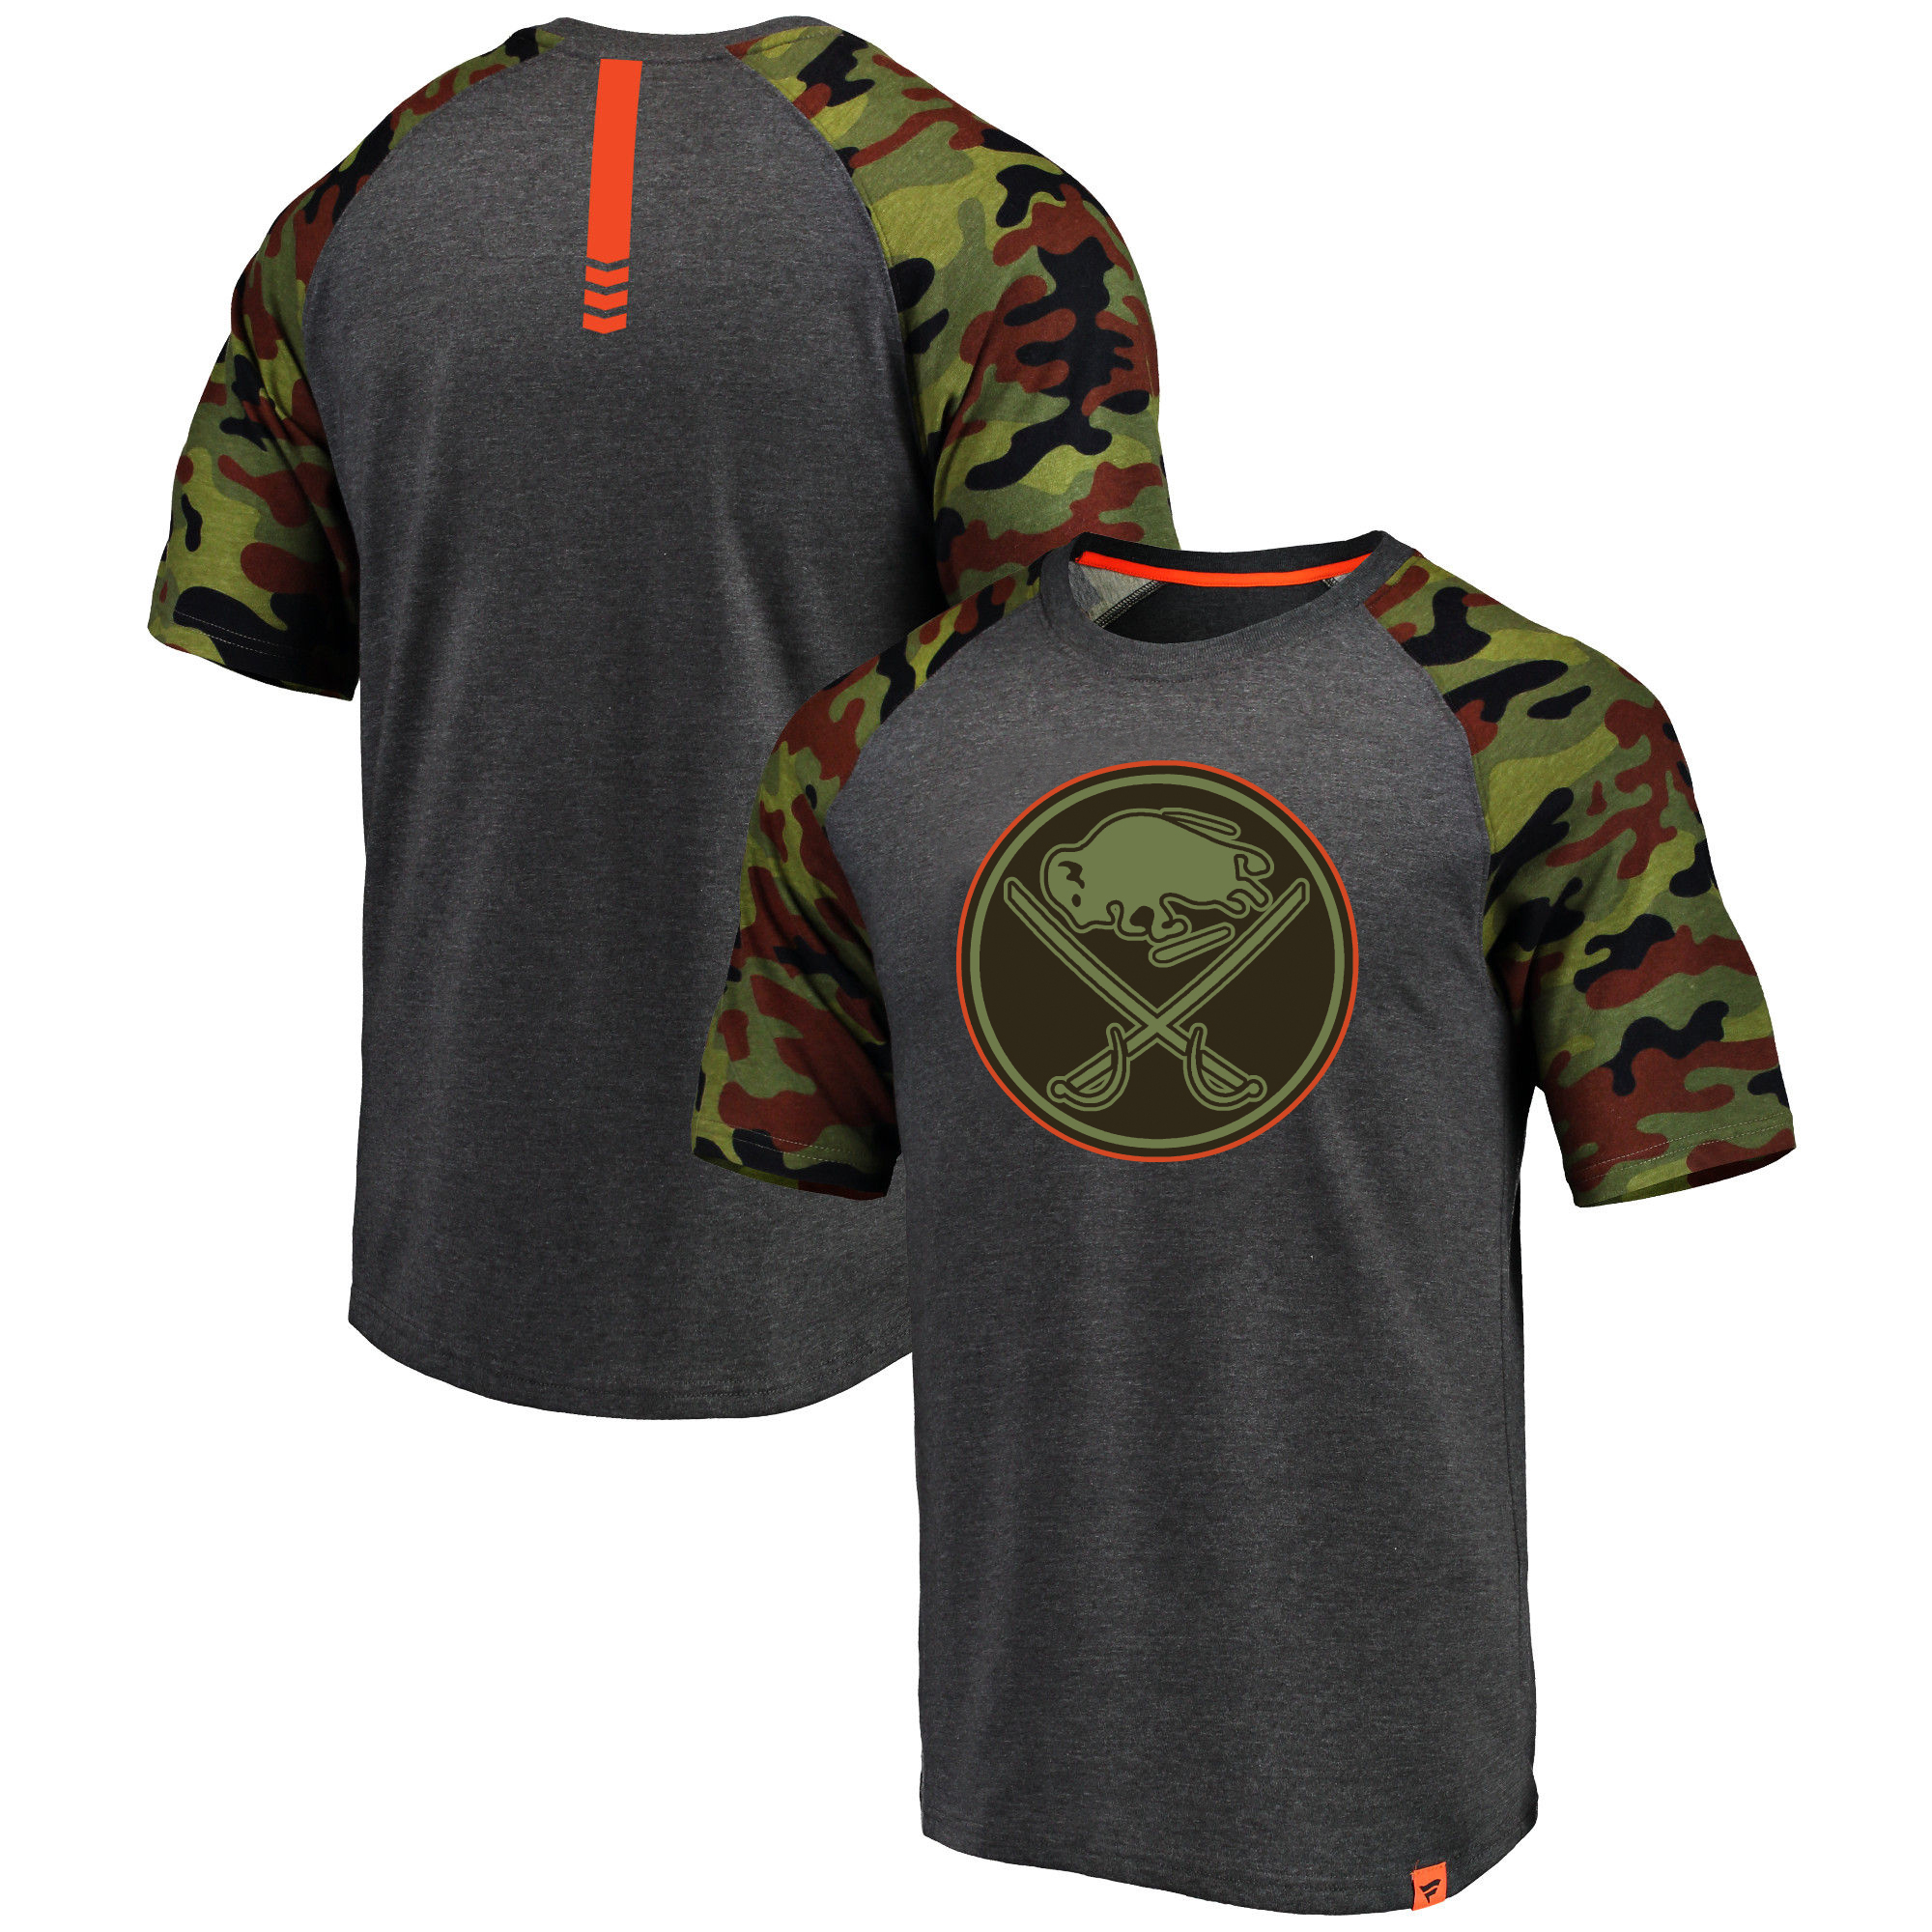 Buffalo Sabres Fanatics Branded Heathered Gray/Camo Recon Camo Raglan T-Shirt